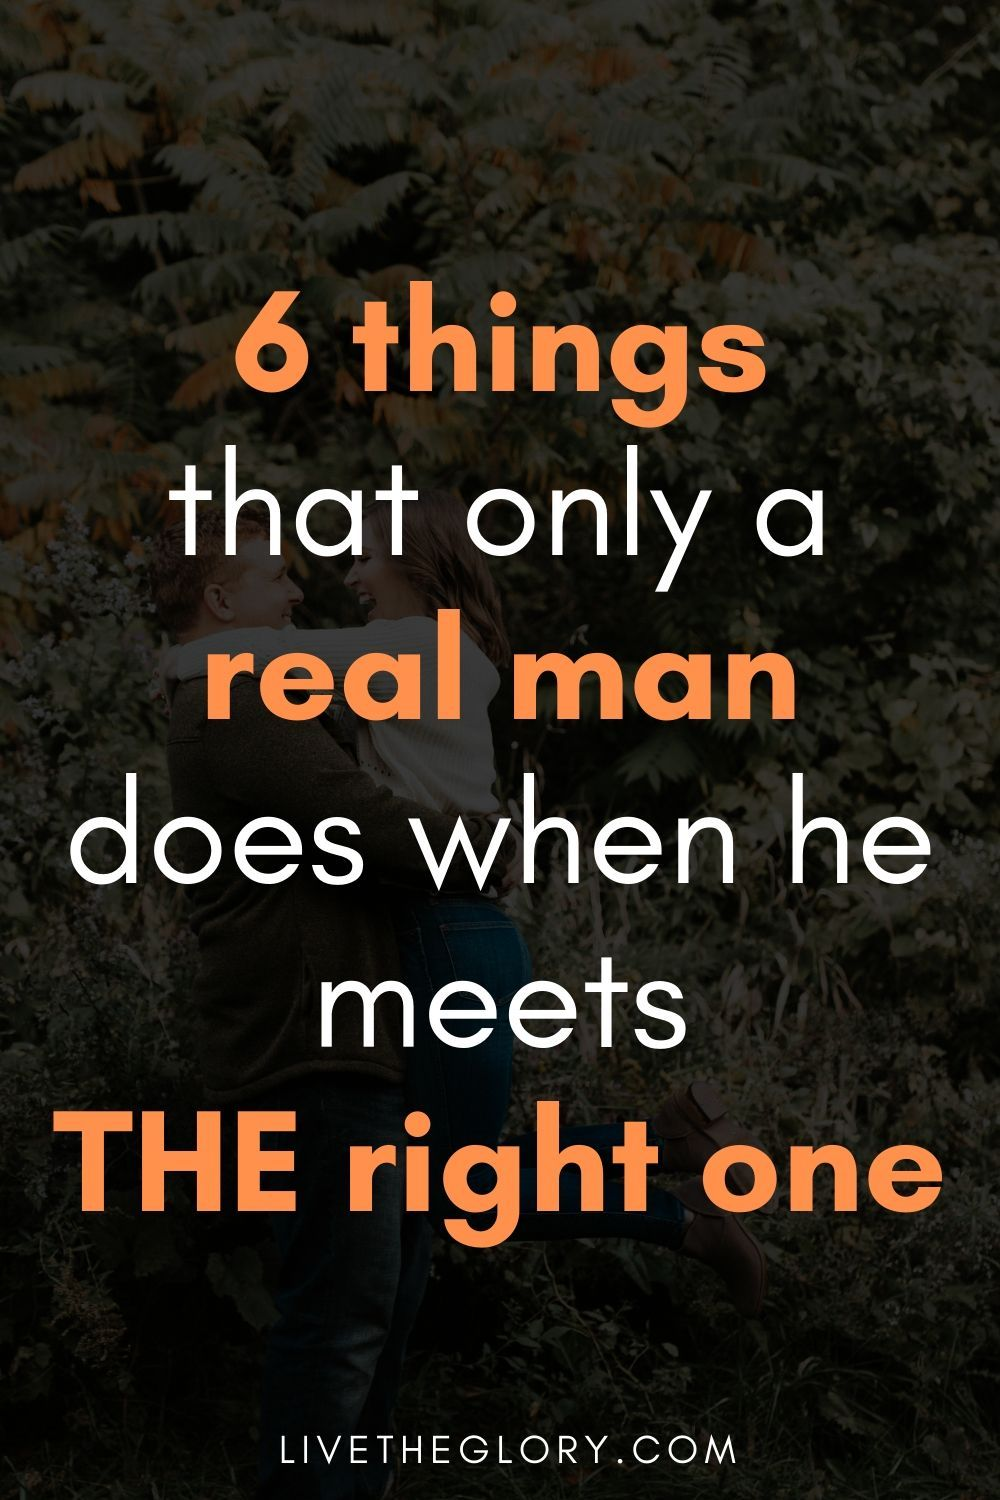 6 things that only a real man does when he meets T